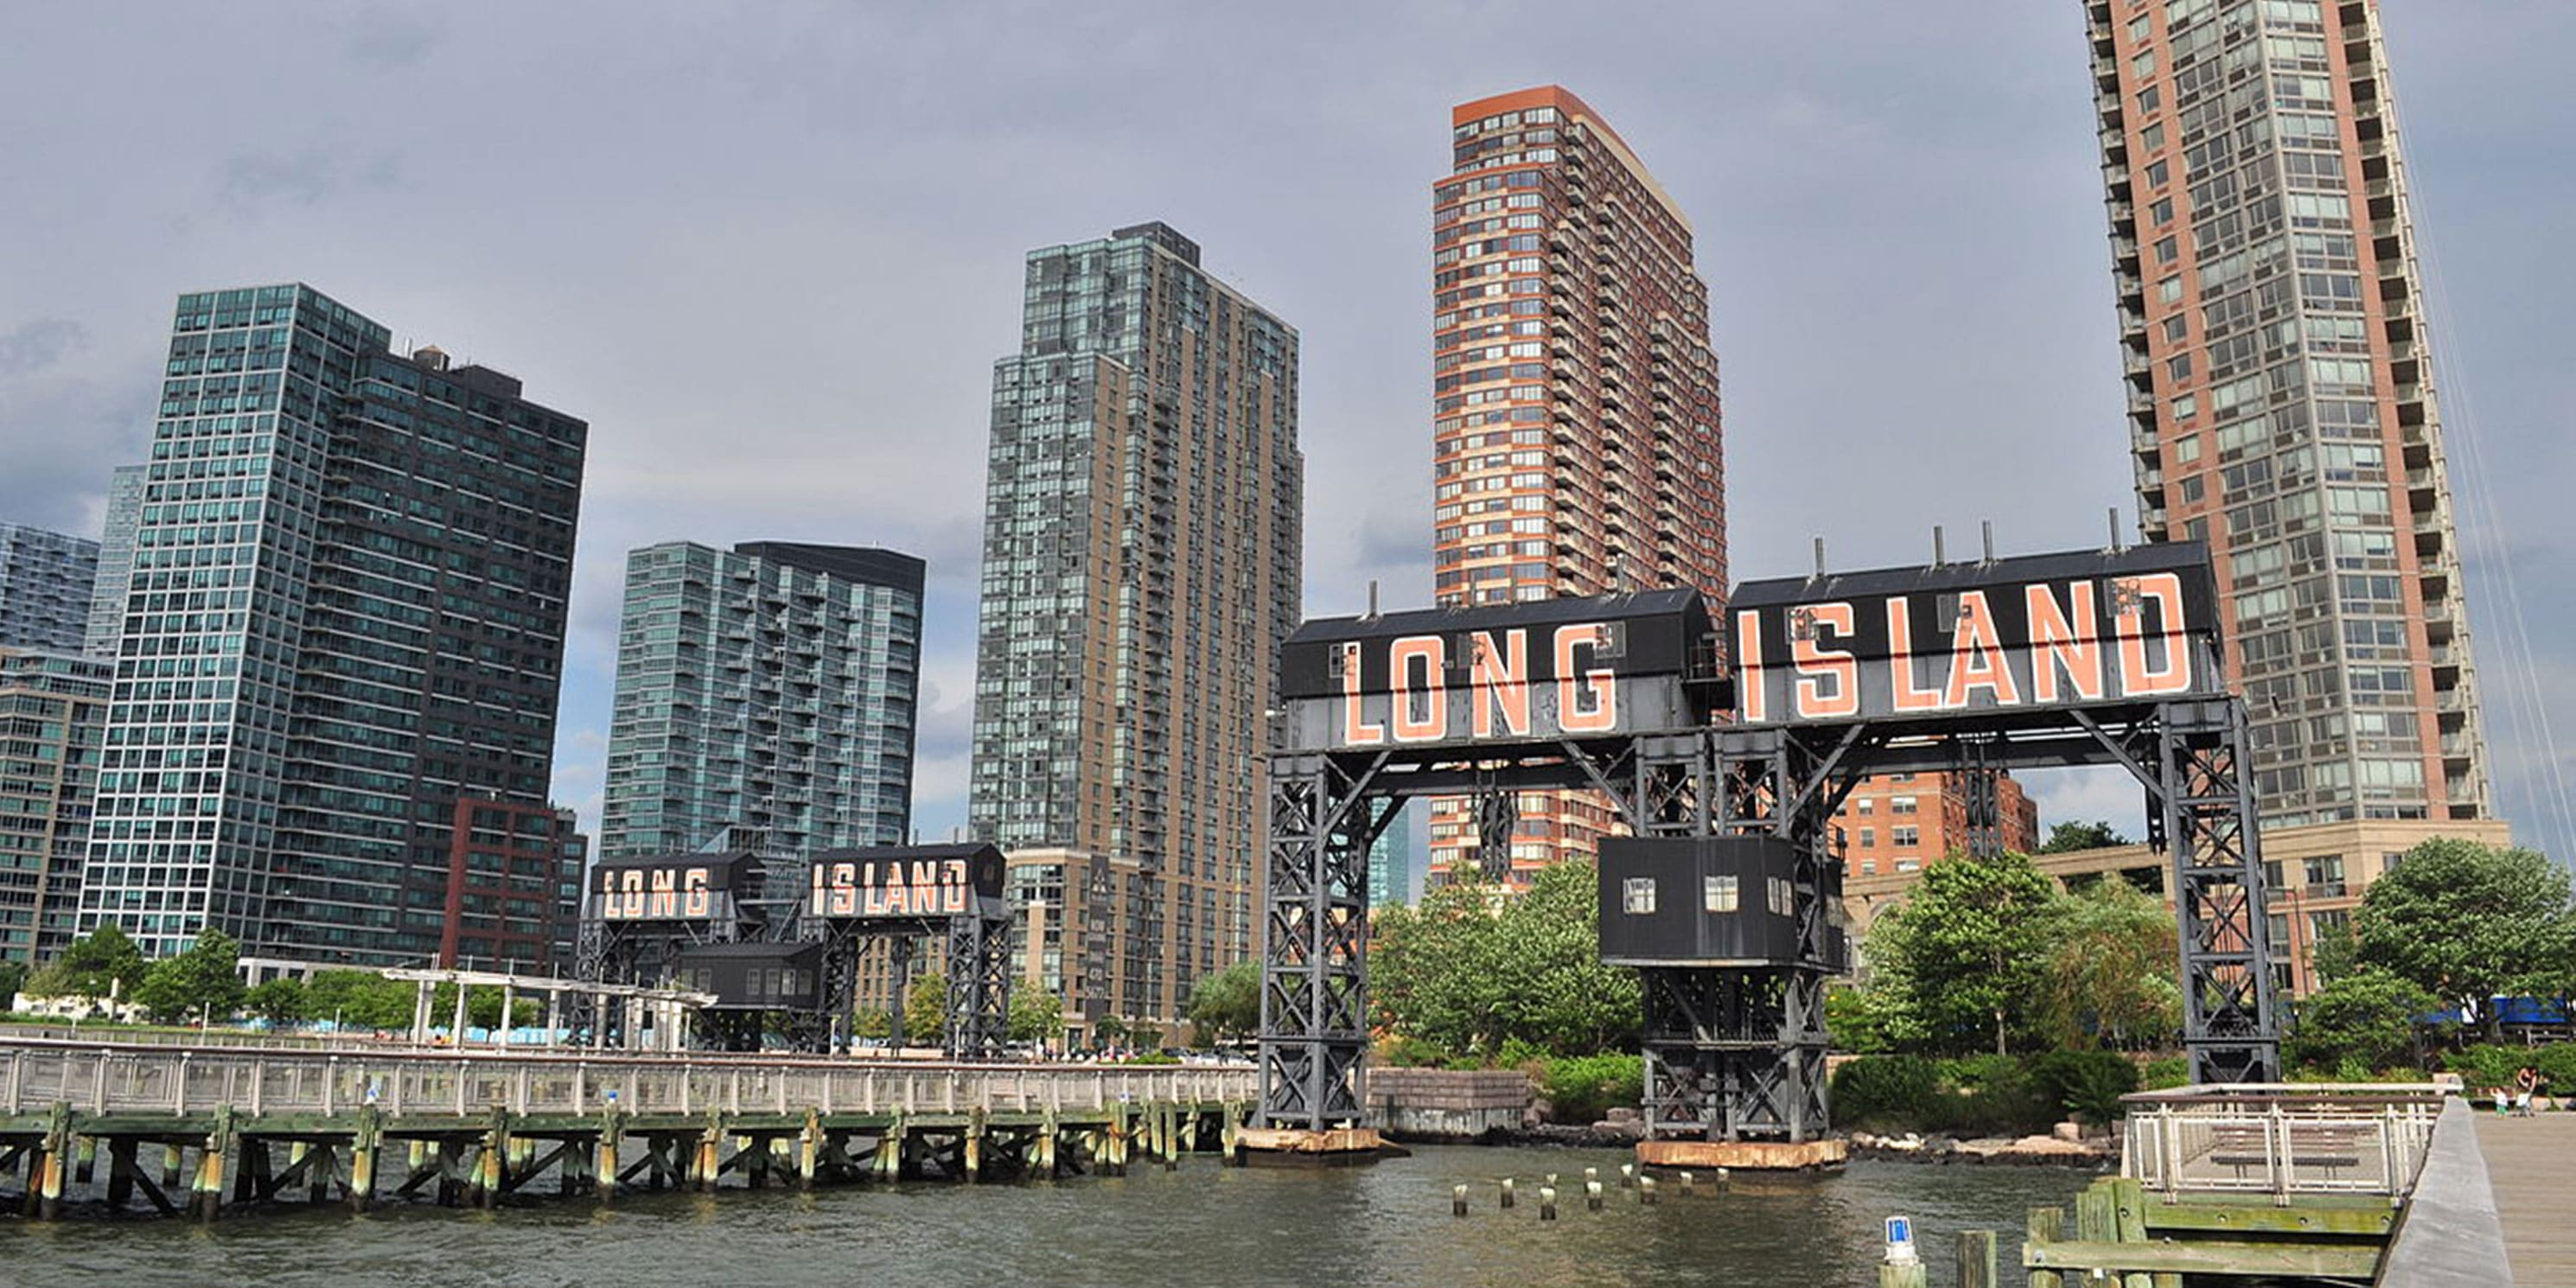 waterfront at Long Island City